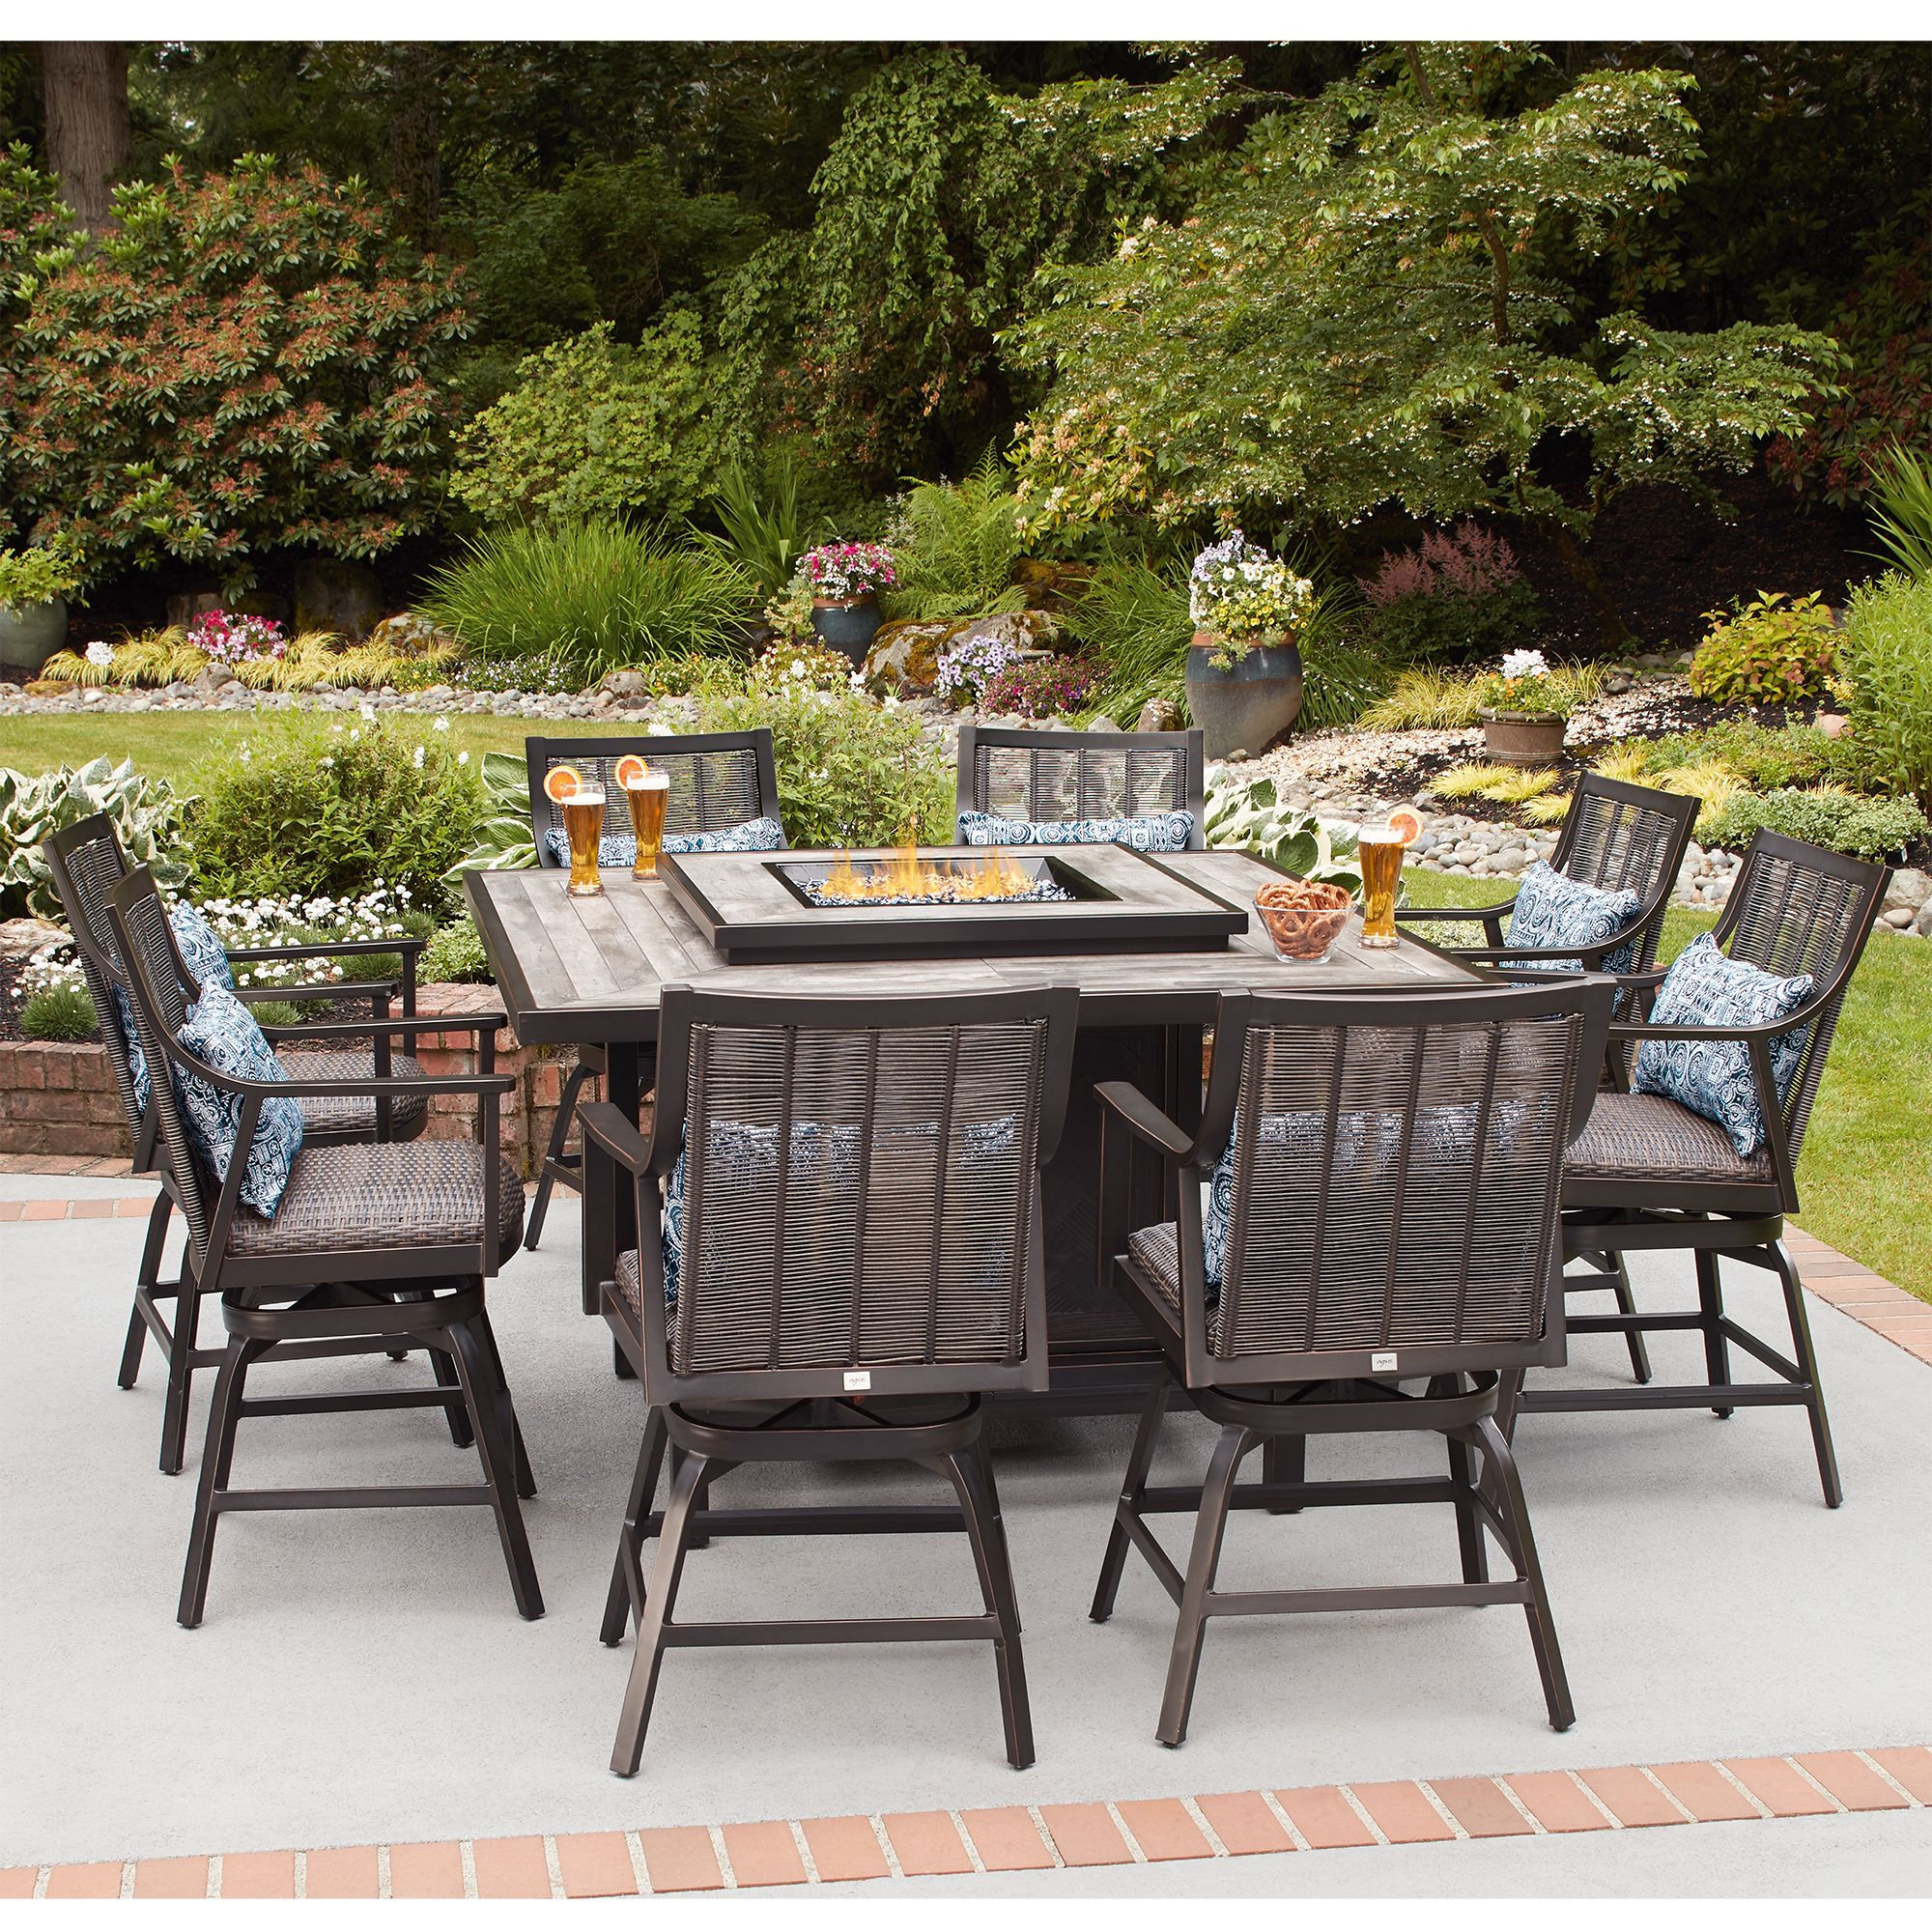 Then It S Time To Add Agio Paris High Dining Fire Pit Set Your Outdoor E This Elegant Features